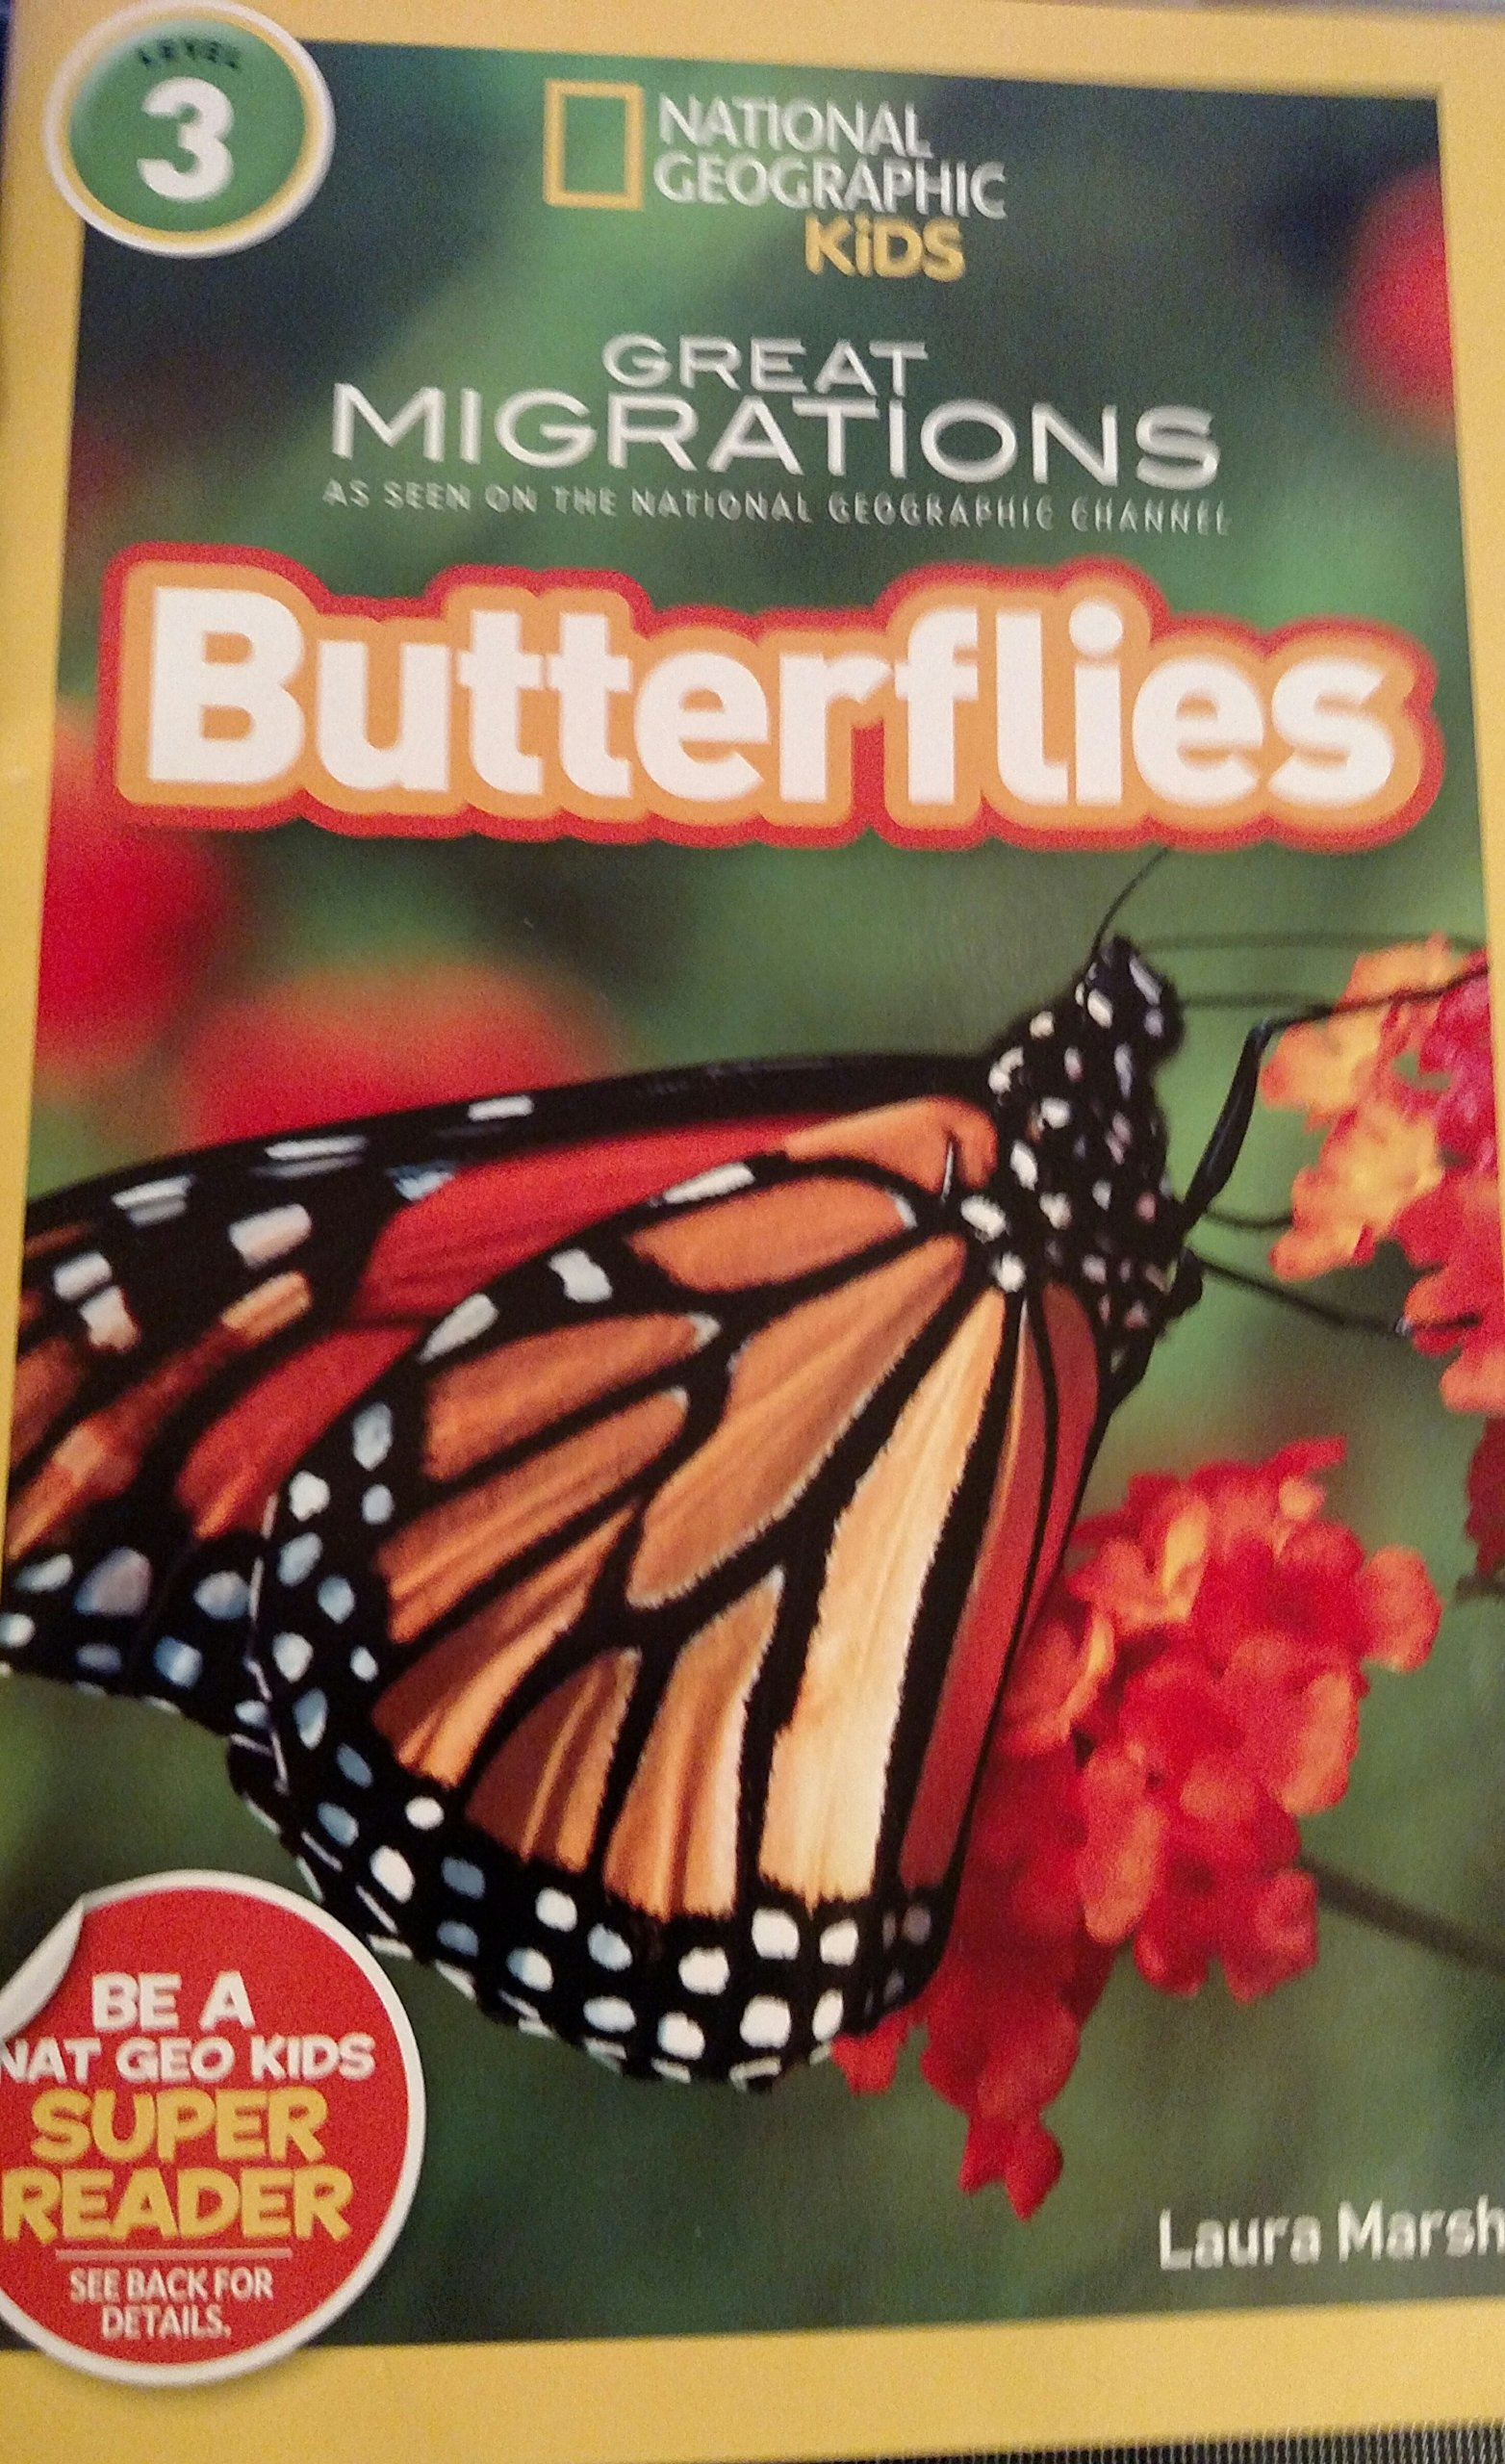 national geographic kids great migrations butterflies reader